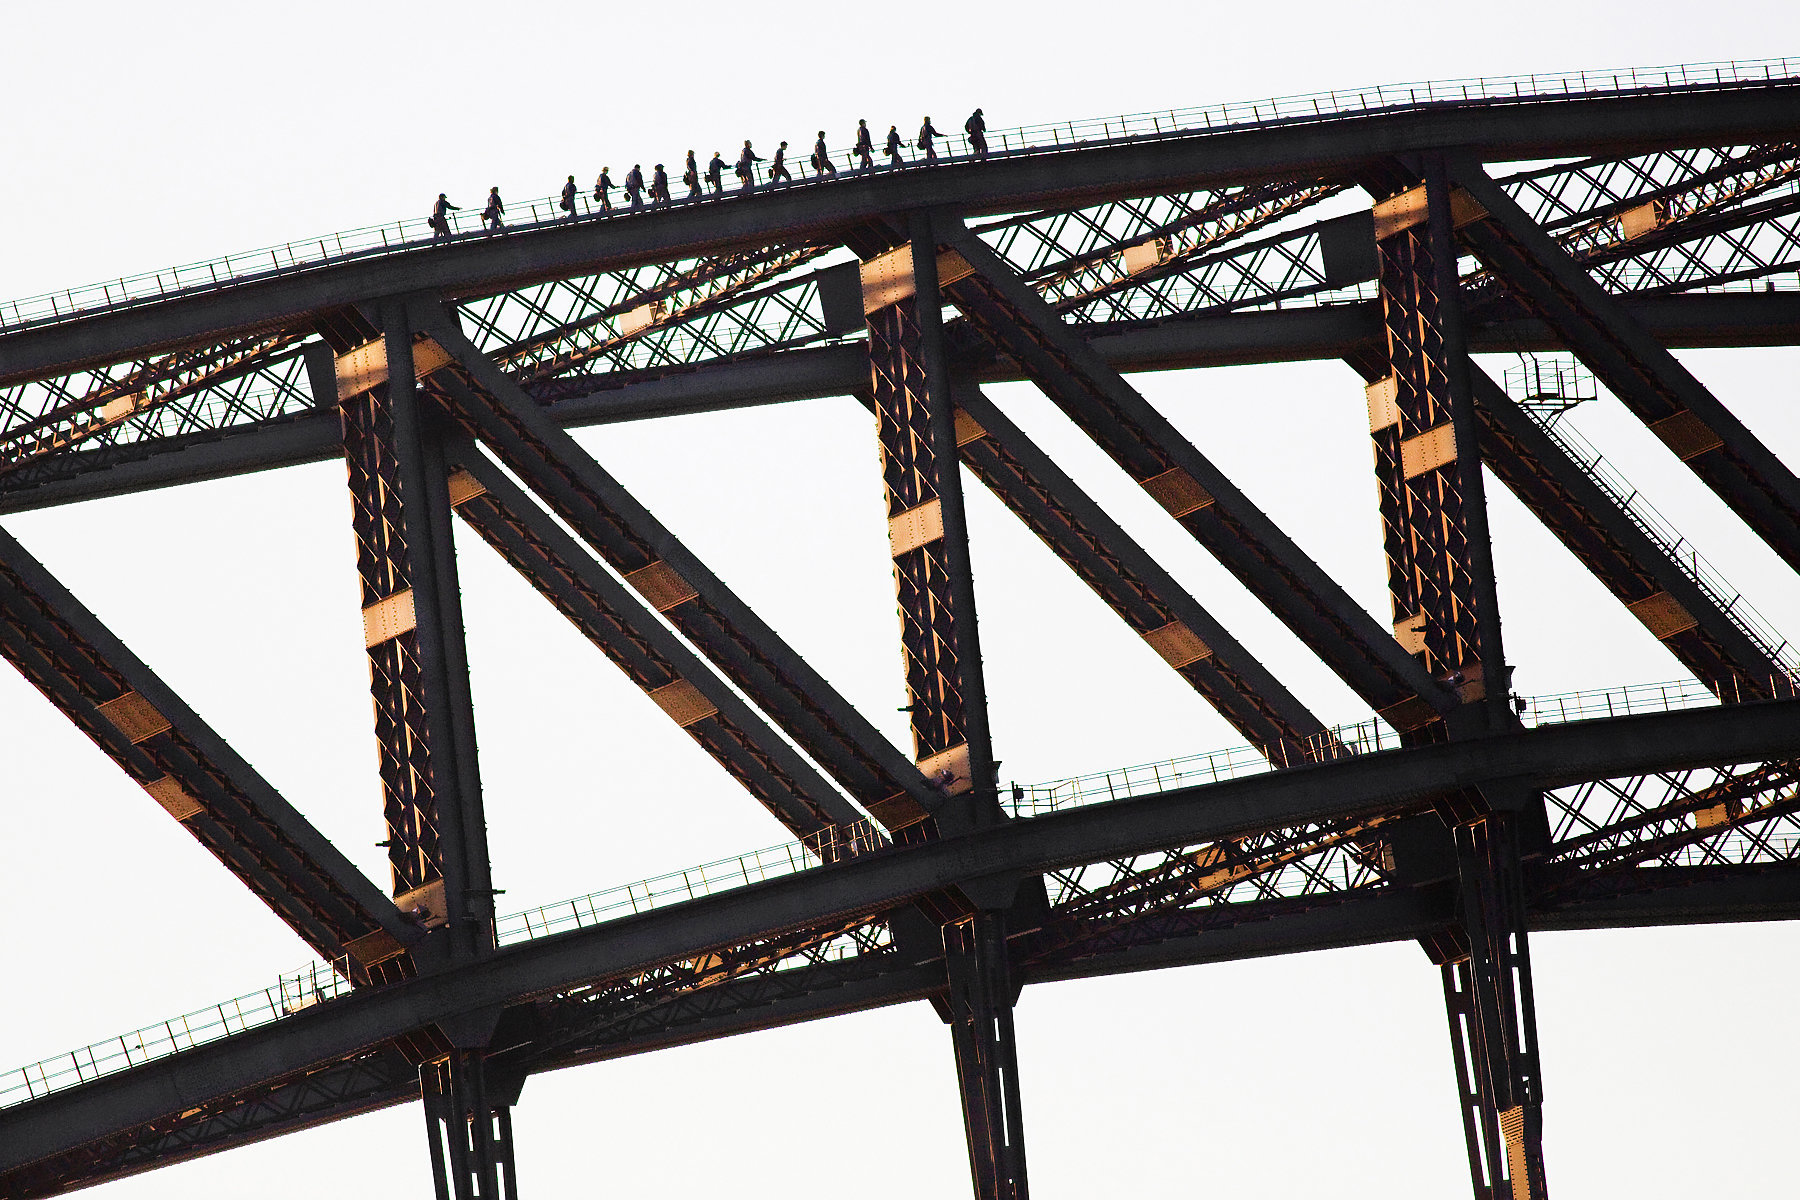 Sydney Harbor Bridge: Australia